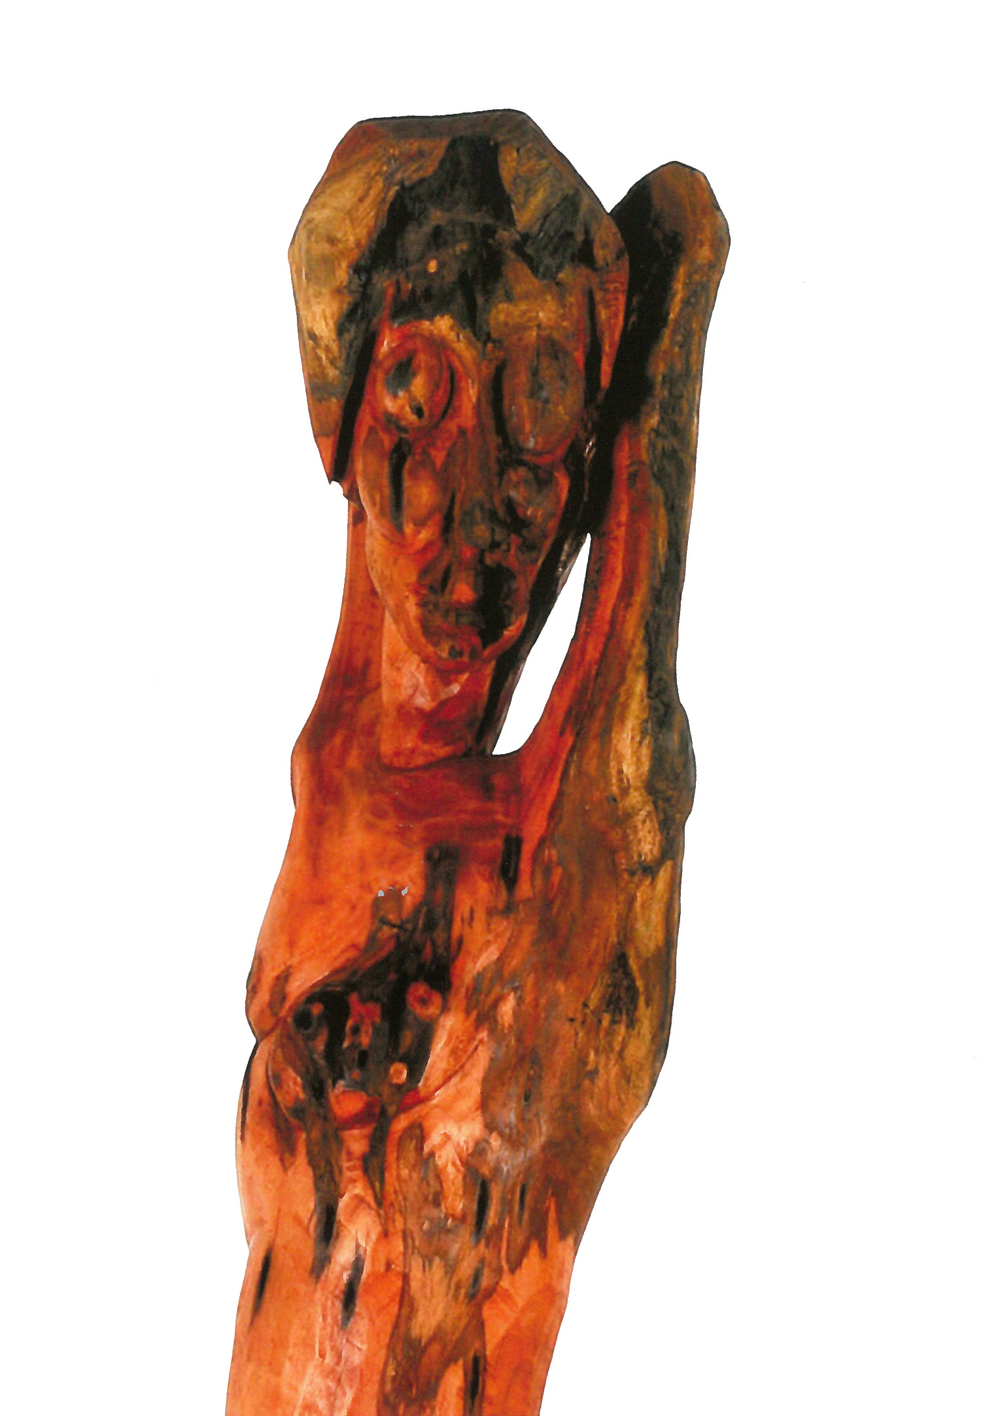 Antonius Roberts_La Femme de Lyford Cay (detail)_2006_Recycled Madeira_72%22.jpg